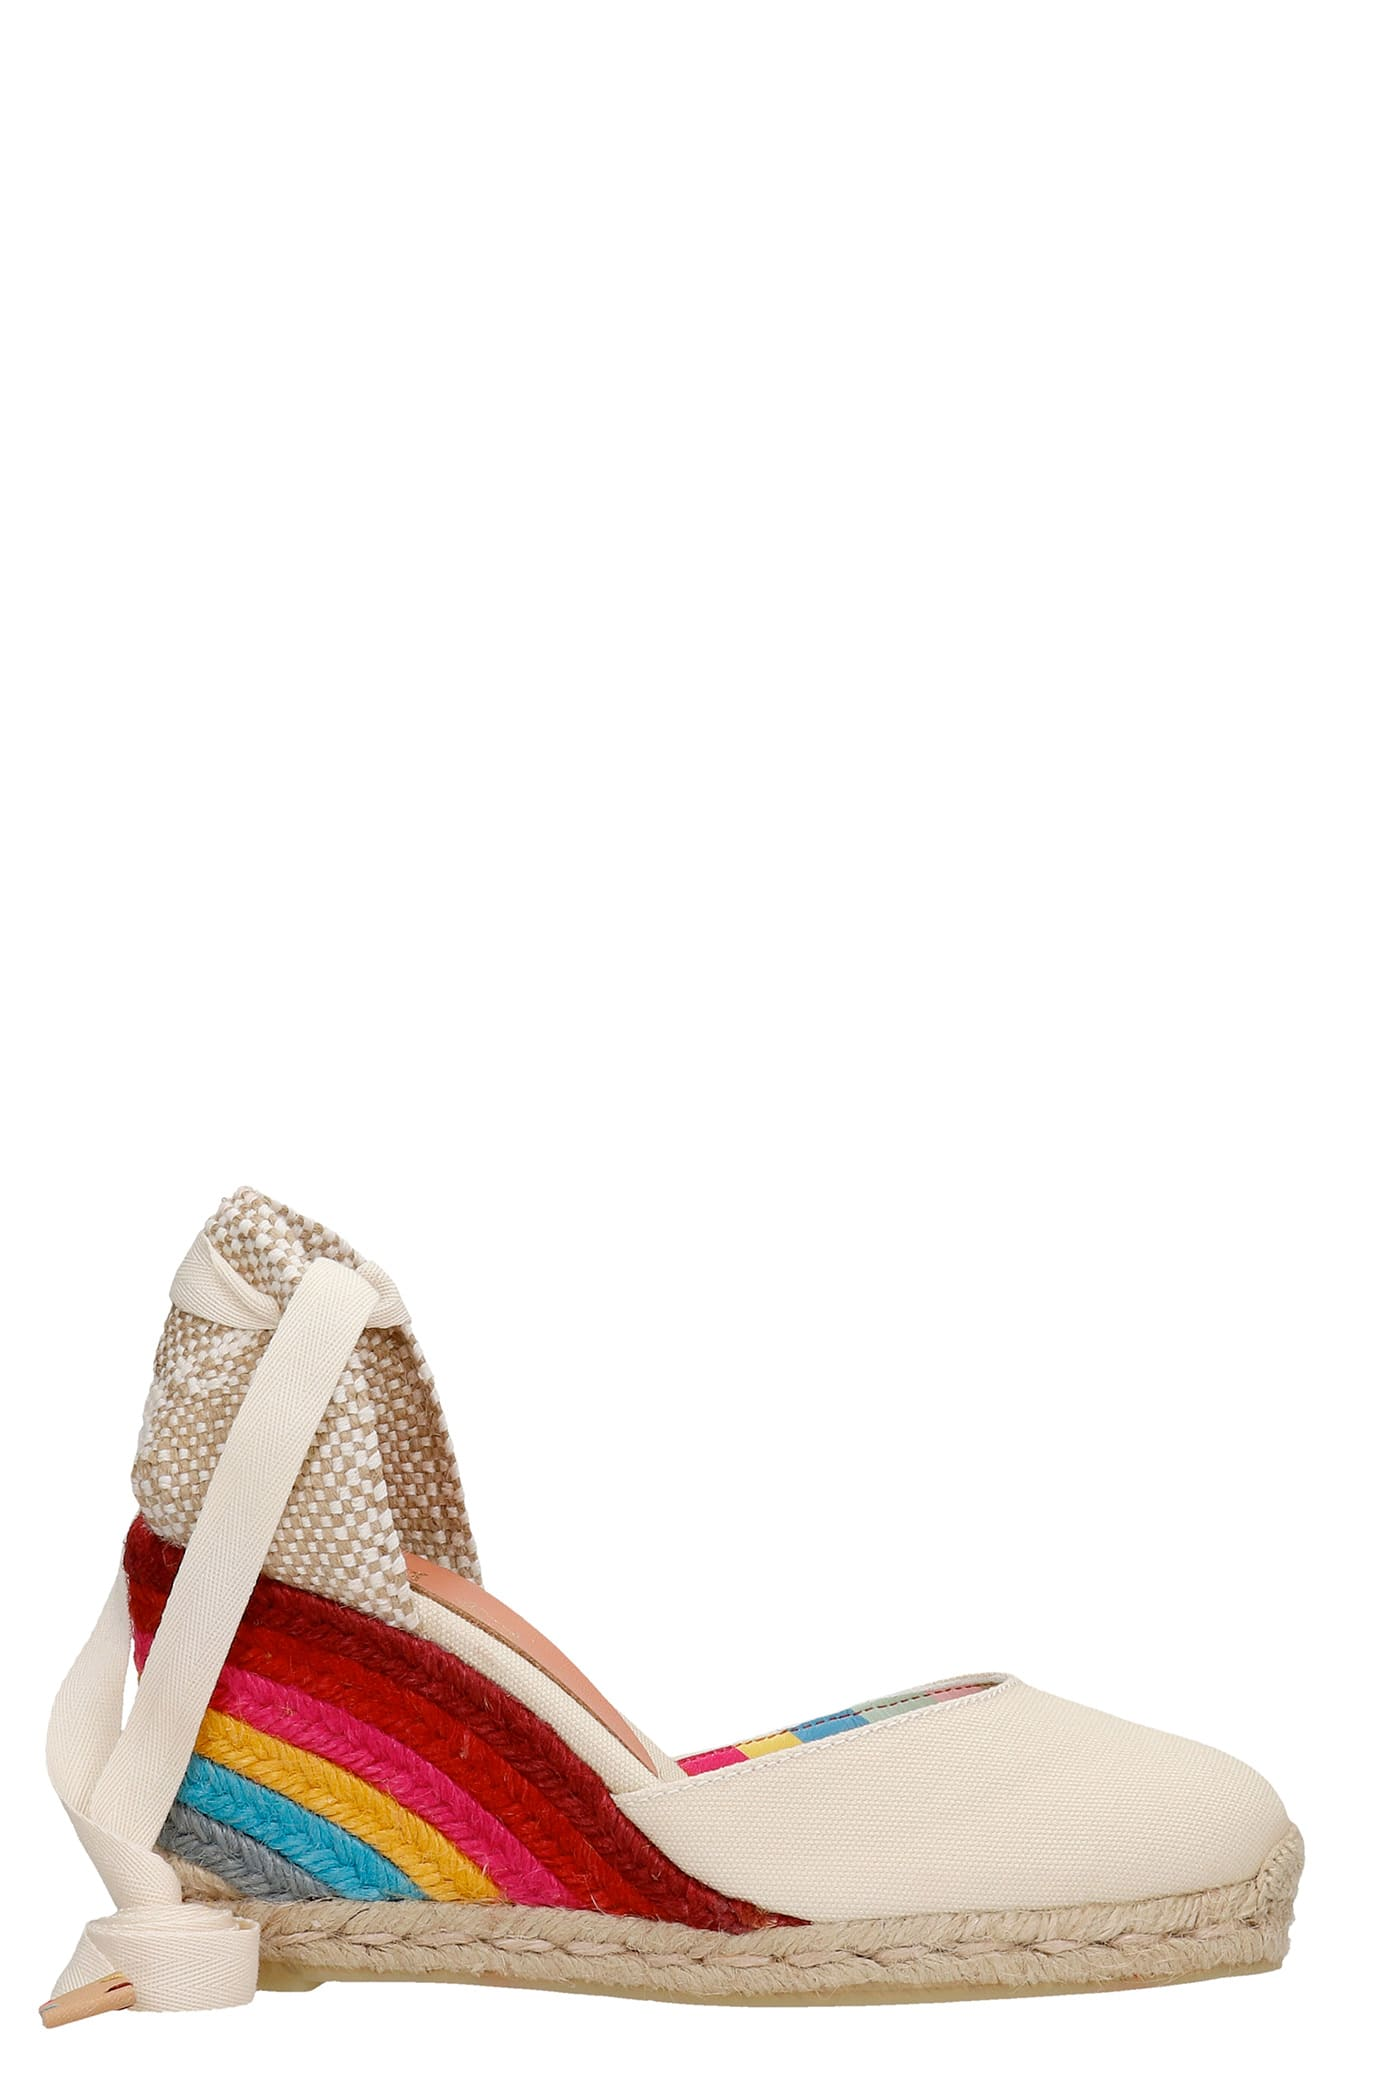 Carina Ps 8-001 Wedges In Beige Canvas